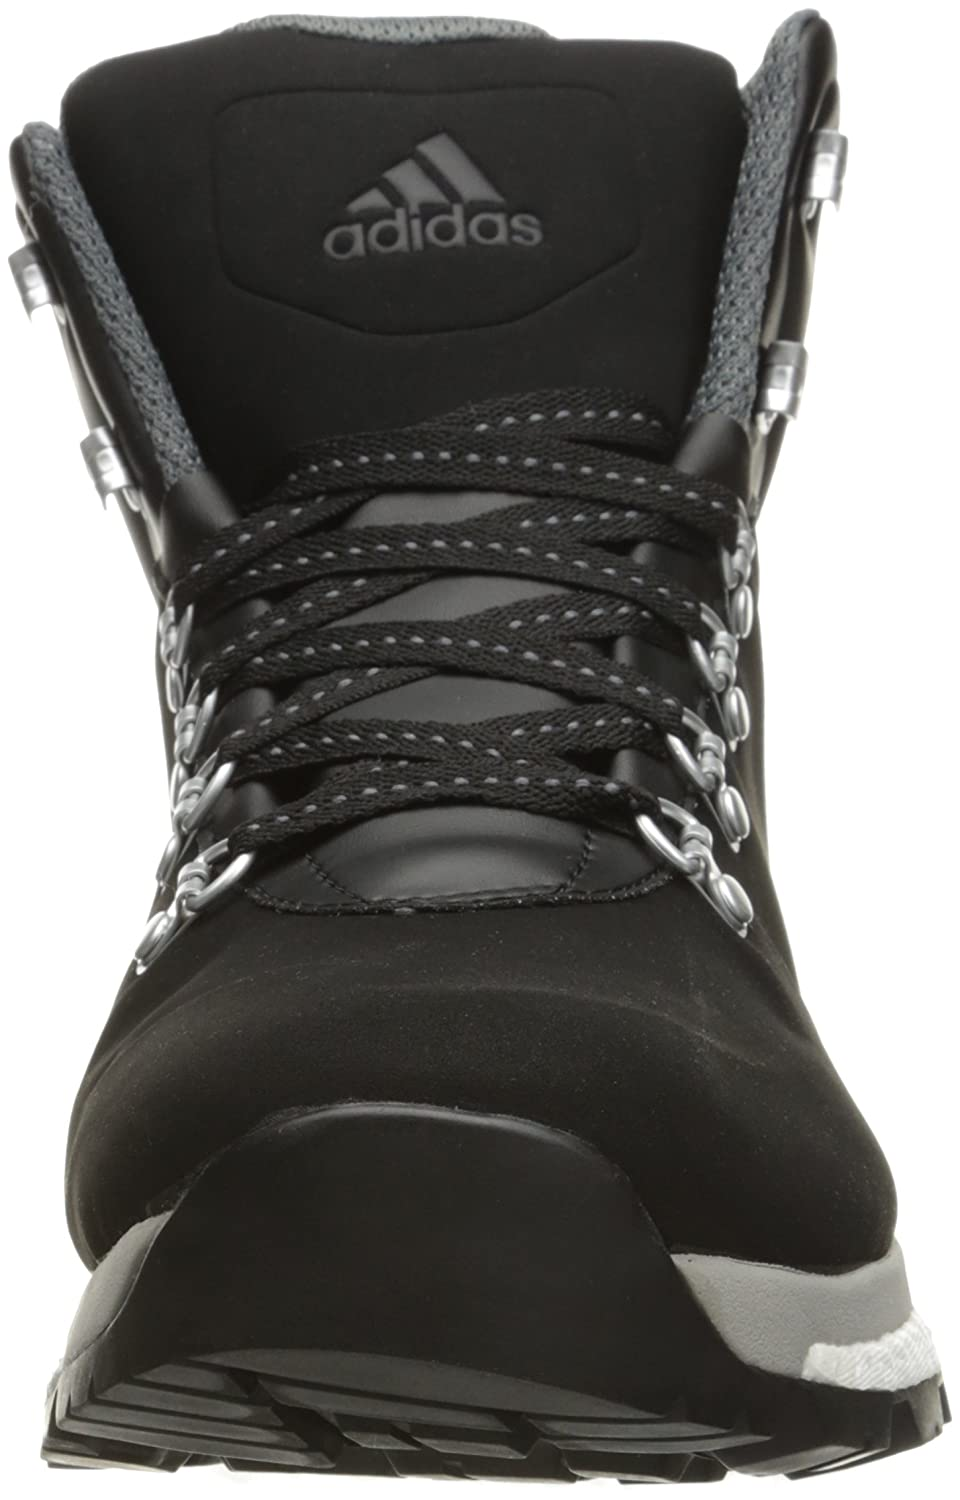 best service 782cb 3be50 Amazon.com  adidas Outdoor Mens CW Pathmaker Hiking Boot  Hiking Boots